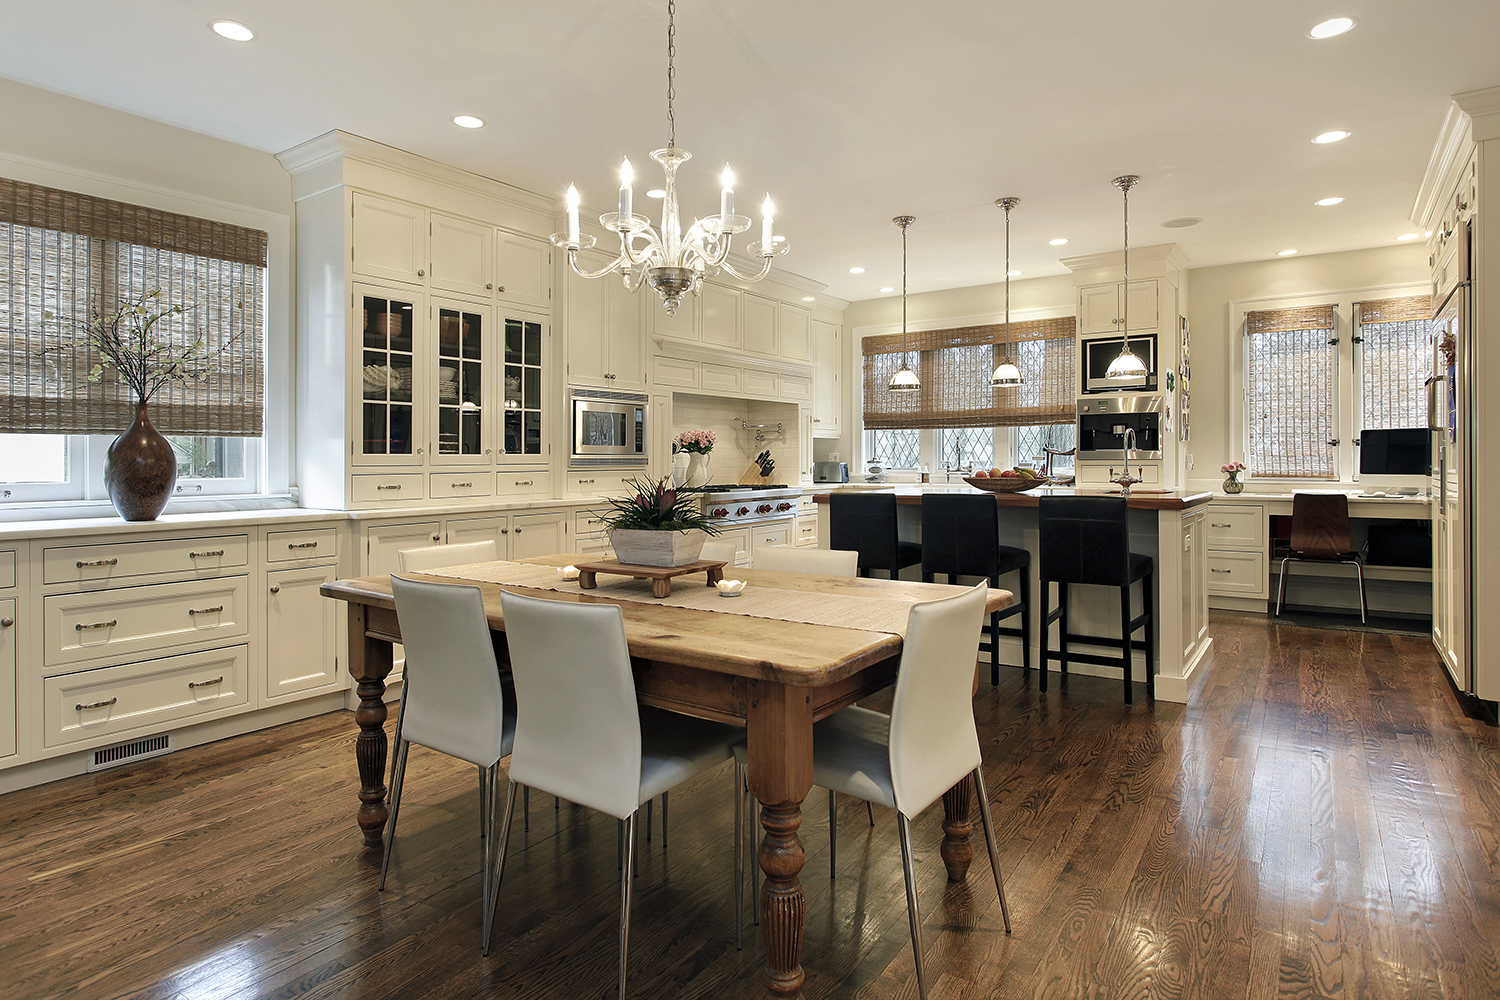 Interior of a newly renovated kitchen checked home preforming thorough home inspection services